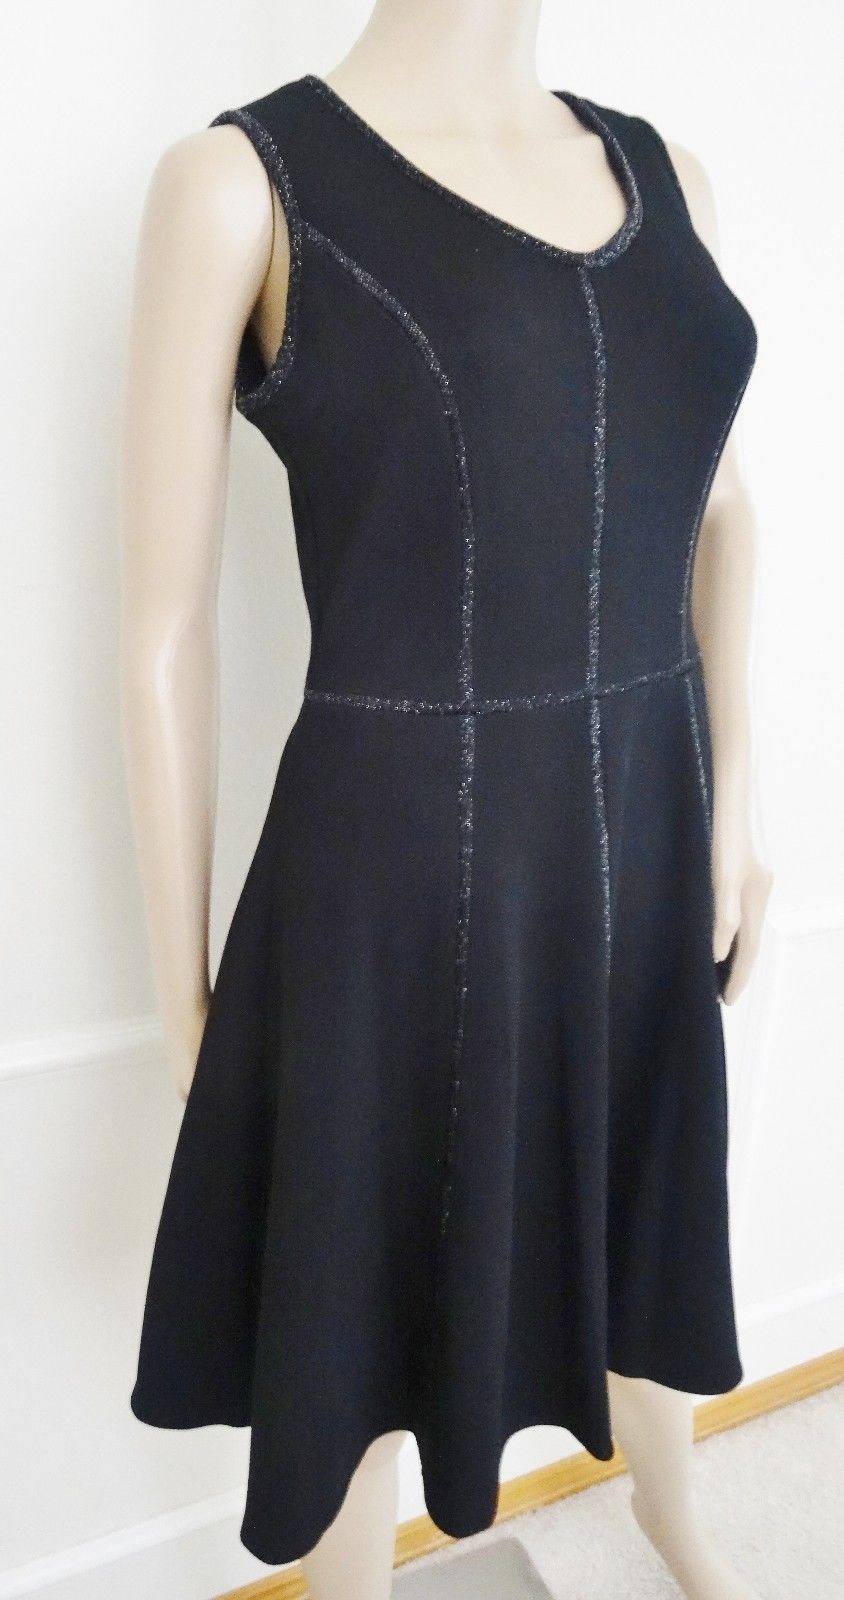 Nwt Taylor Stretch Fit  Flare Embellished Trim Sleeveless Dress Sz 10 Black $138